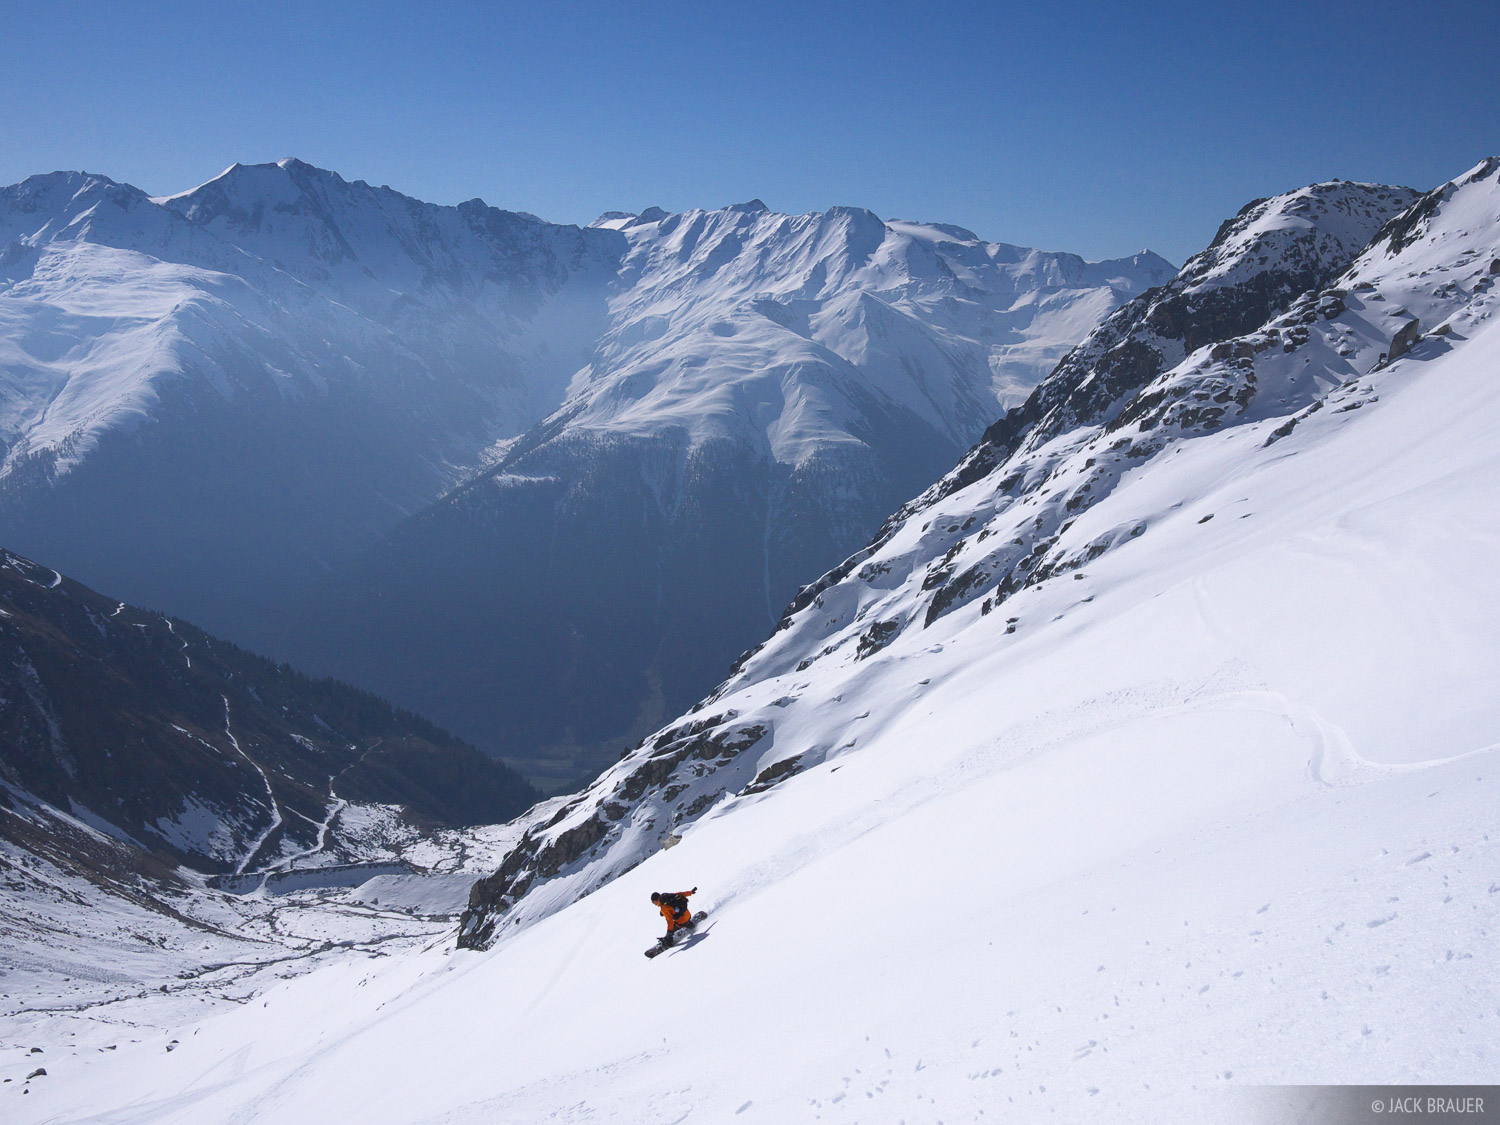 snowboarding, Bernese Oberland, Switzerland, photo